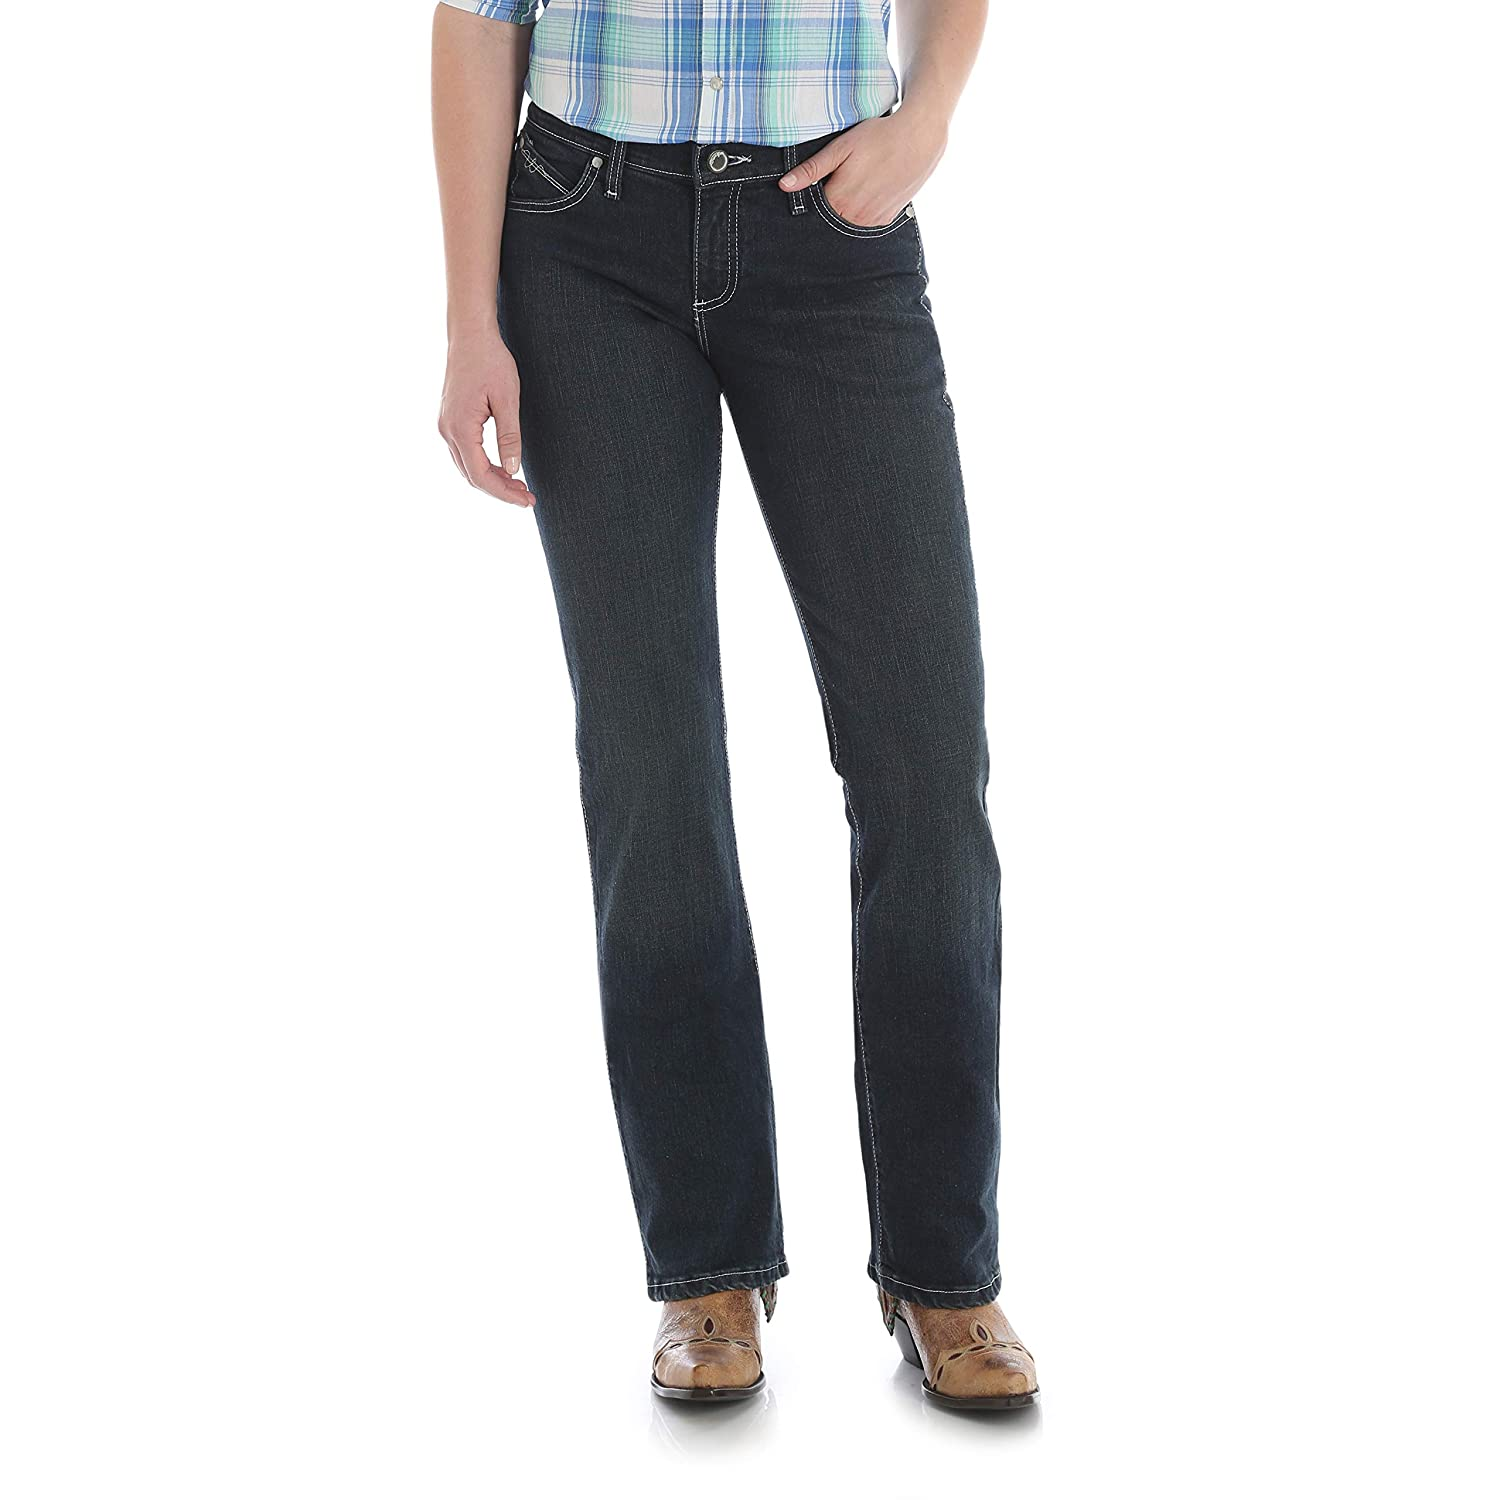 Wrangler Womens Womens Q-Baby Mid Rise Boot Cut Ultimate Riding Jean